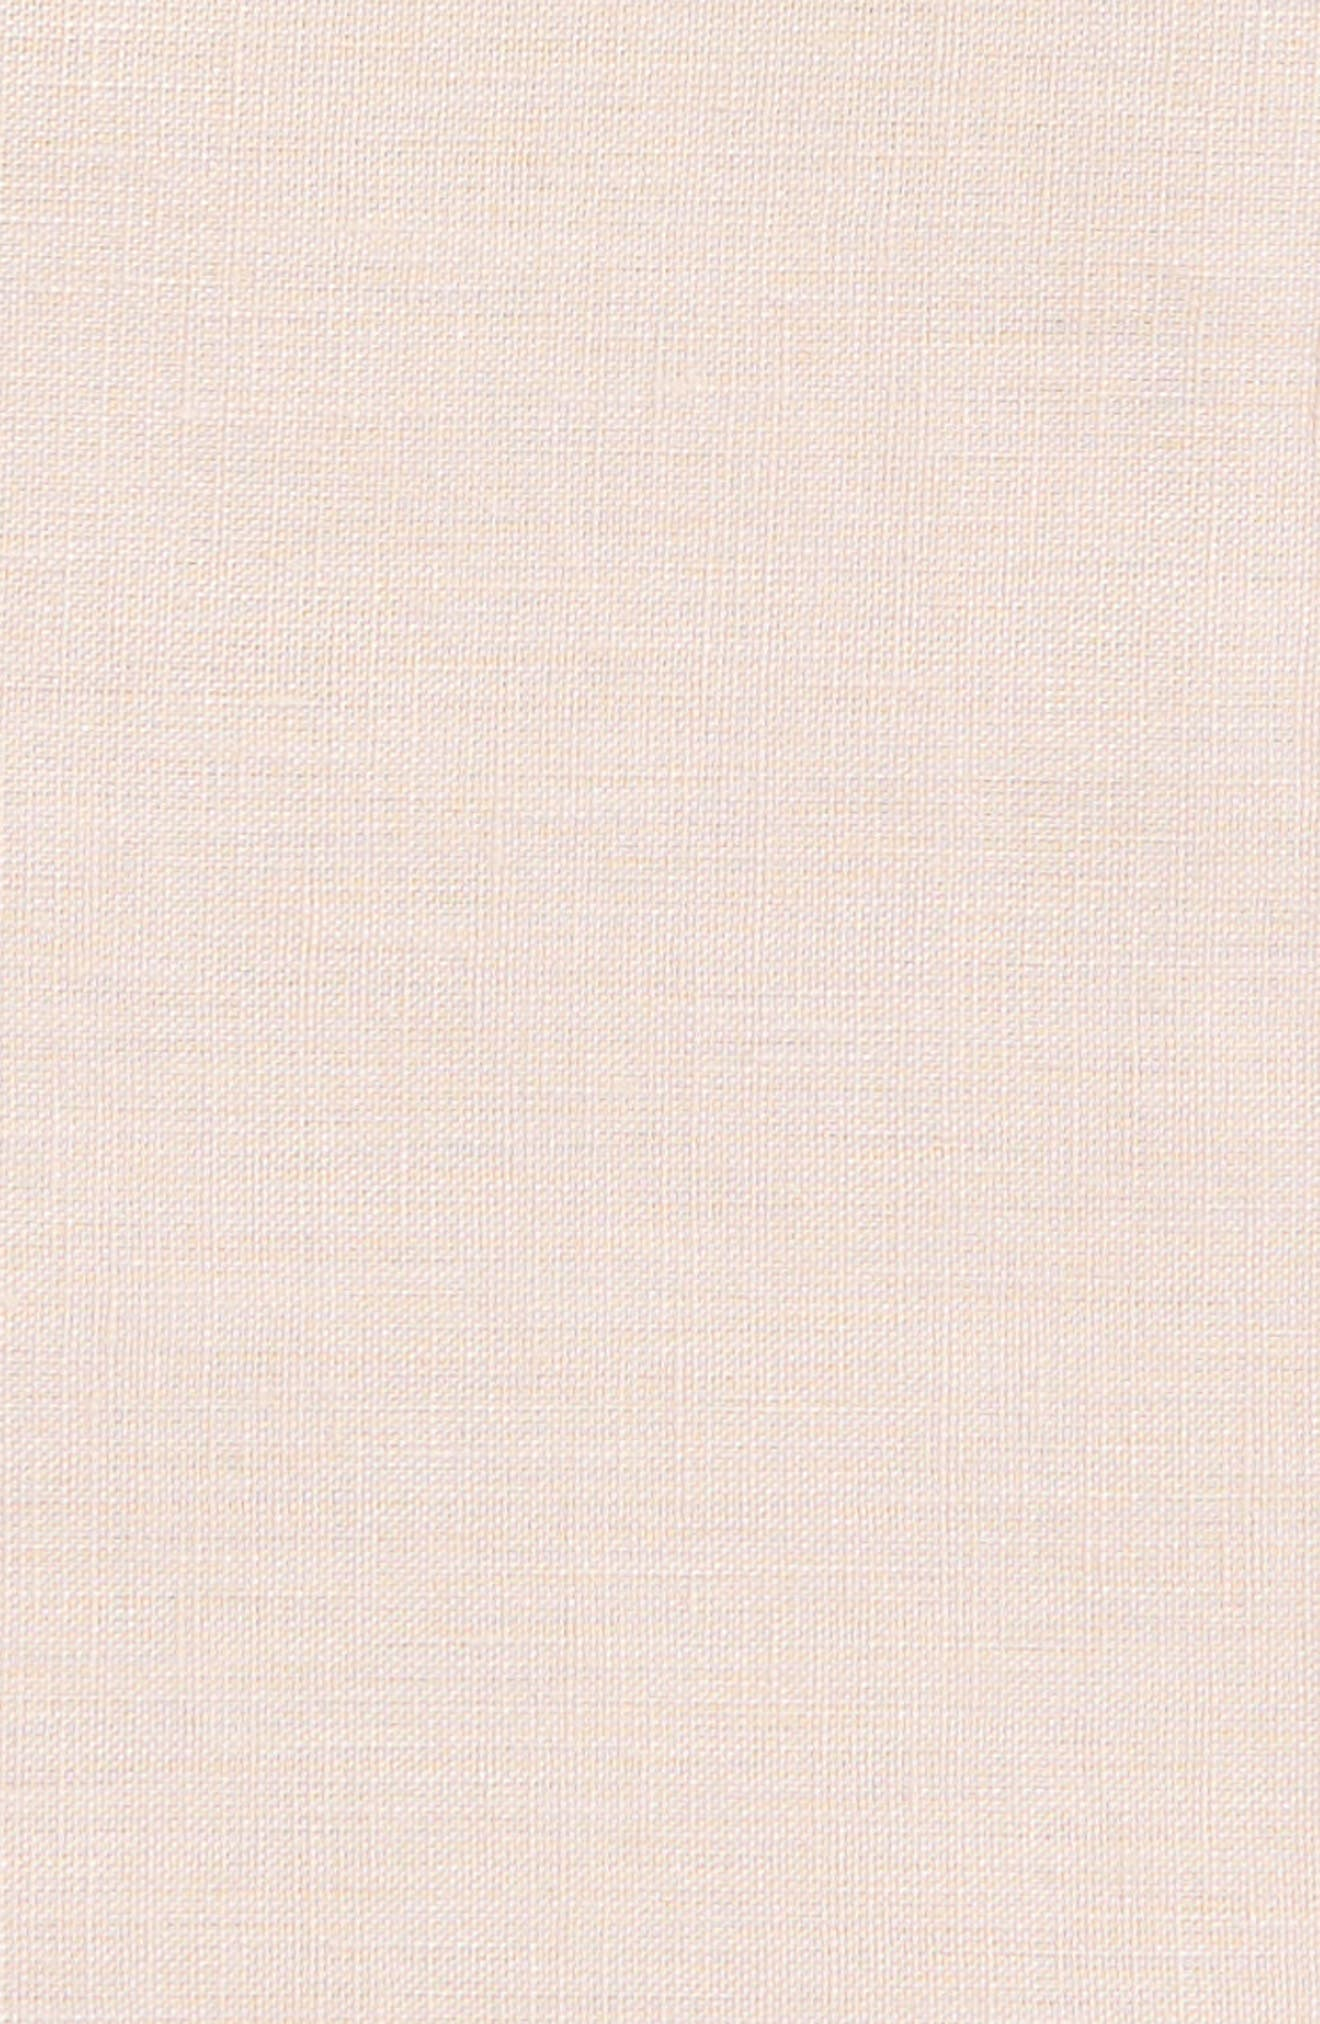 Washed Linen Tablecloth,                             Alternate thumbnail 15, color,